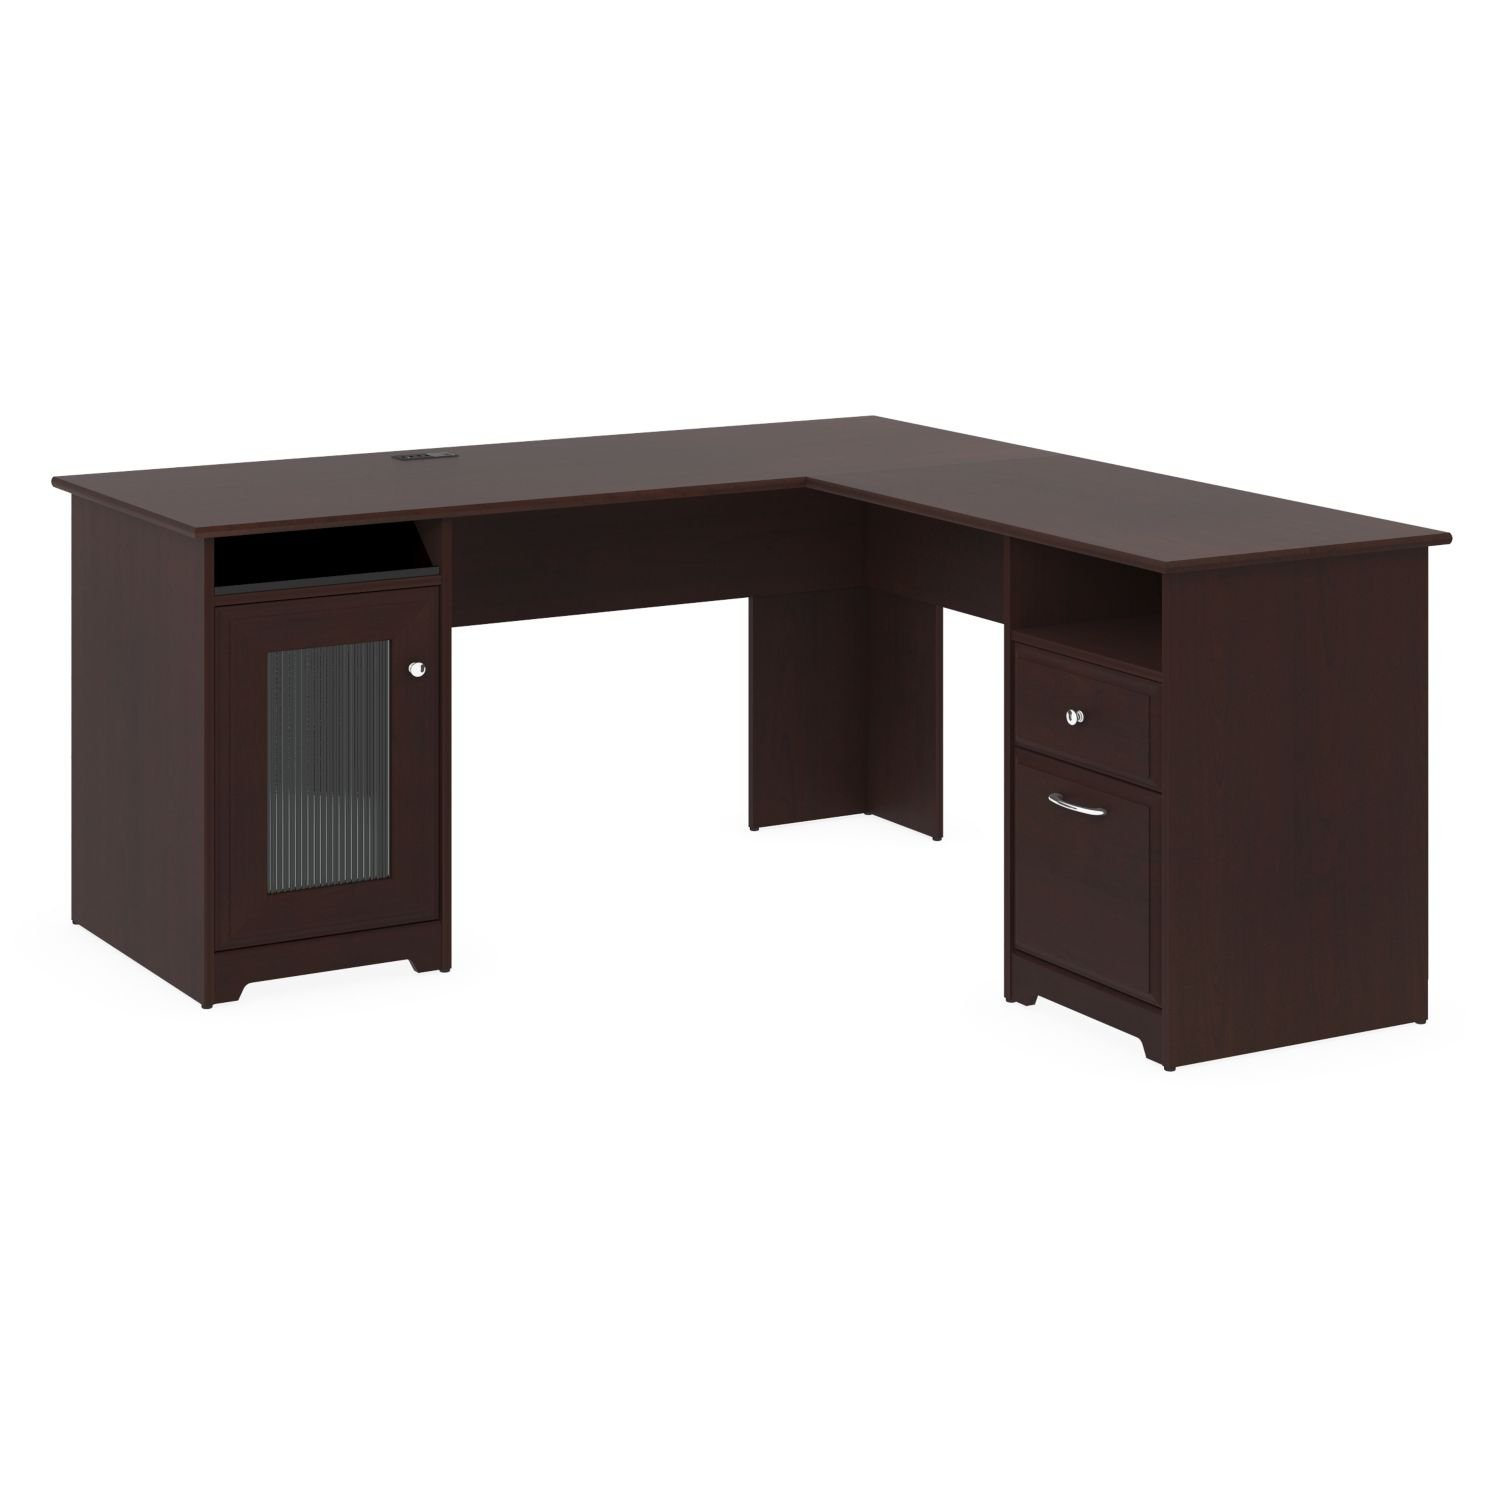 l shaped office computer desk executive wood corner home cherry oak furniture ebay. Black Bedroom Furniture Sets. Home Design Ideas